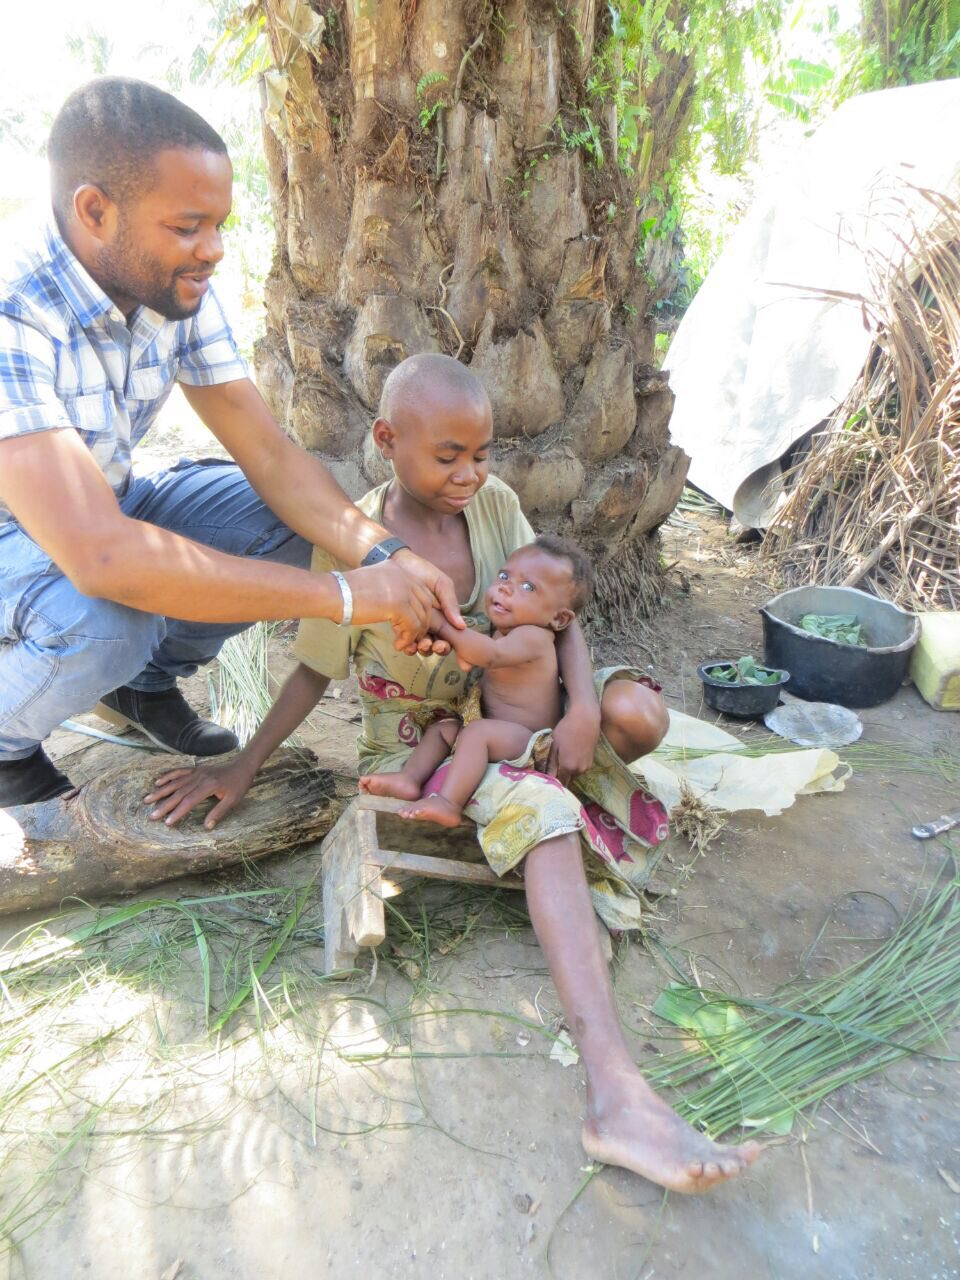 GRI staff doctor, Philippe, on a recent outreach to the pygmies near Oicha